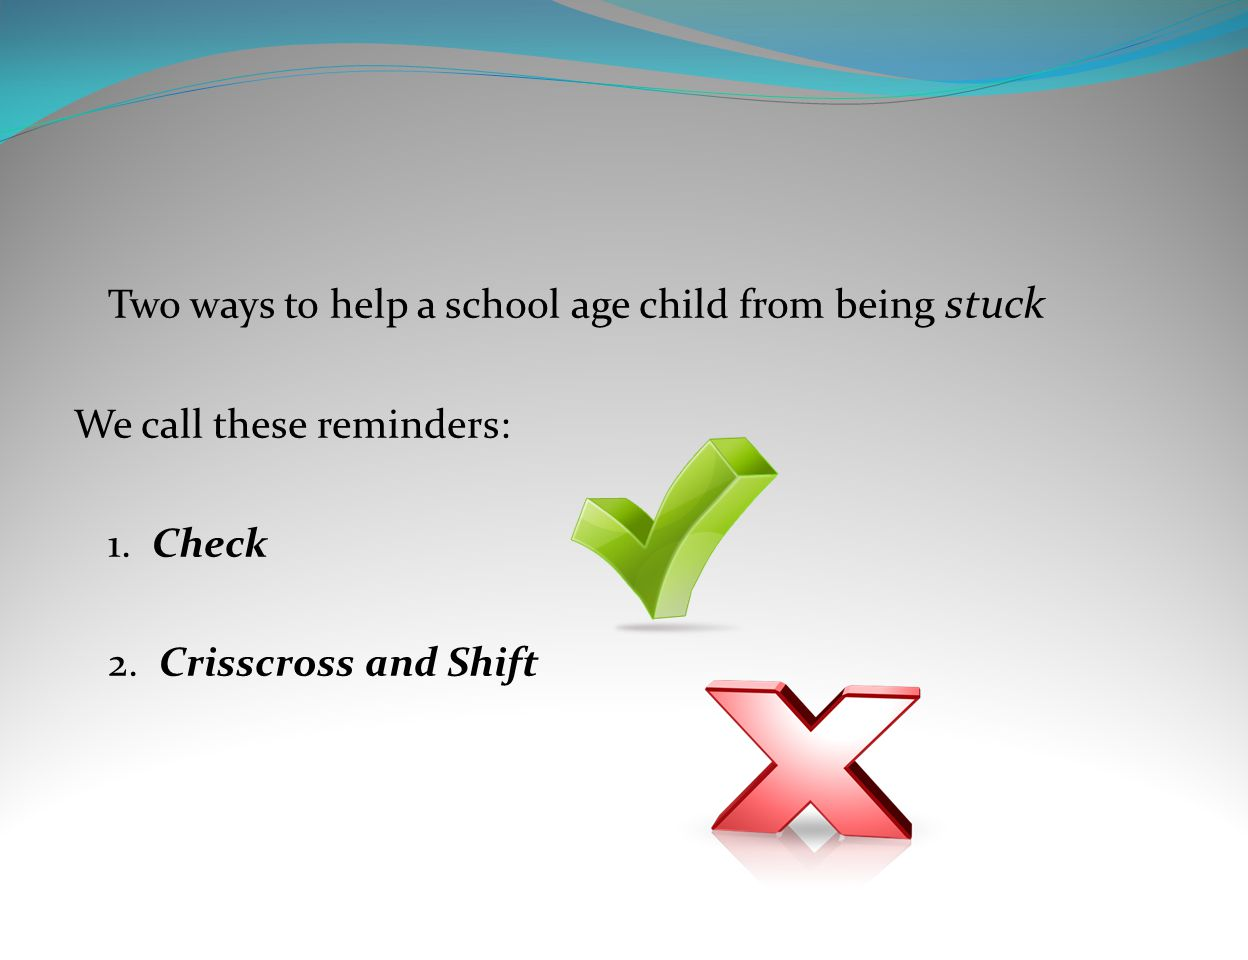 Two ways to help a school age child from being stuck